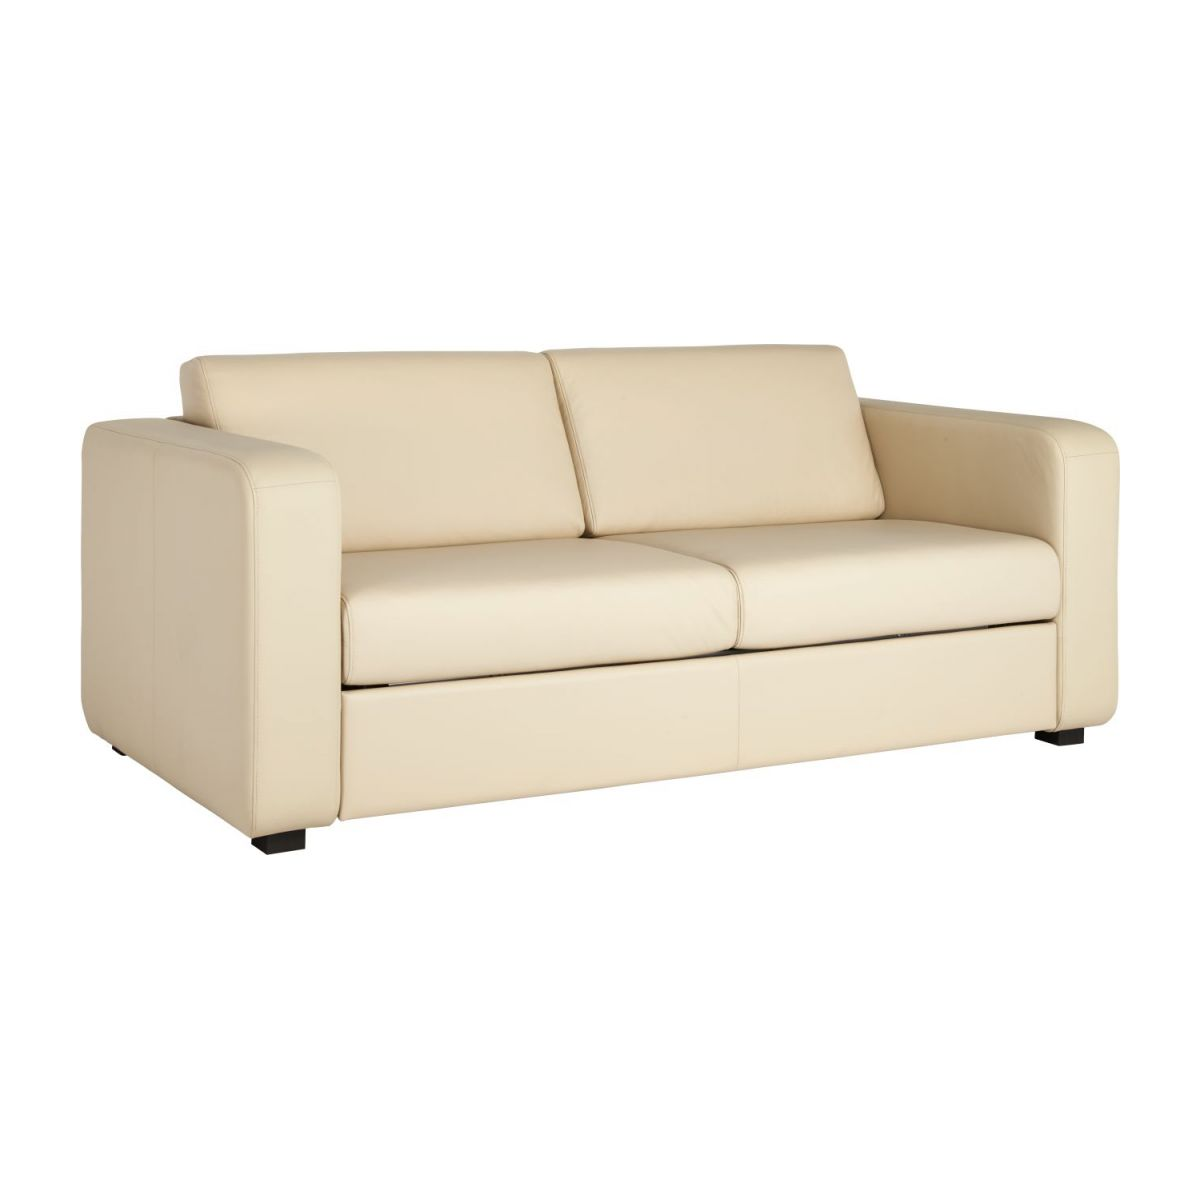 3-seater leather sofa n°1